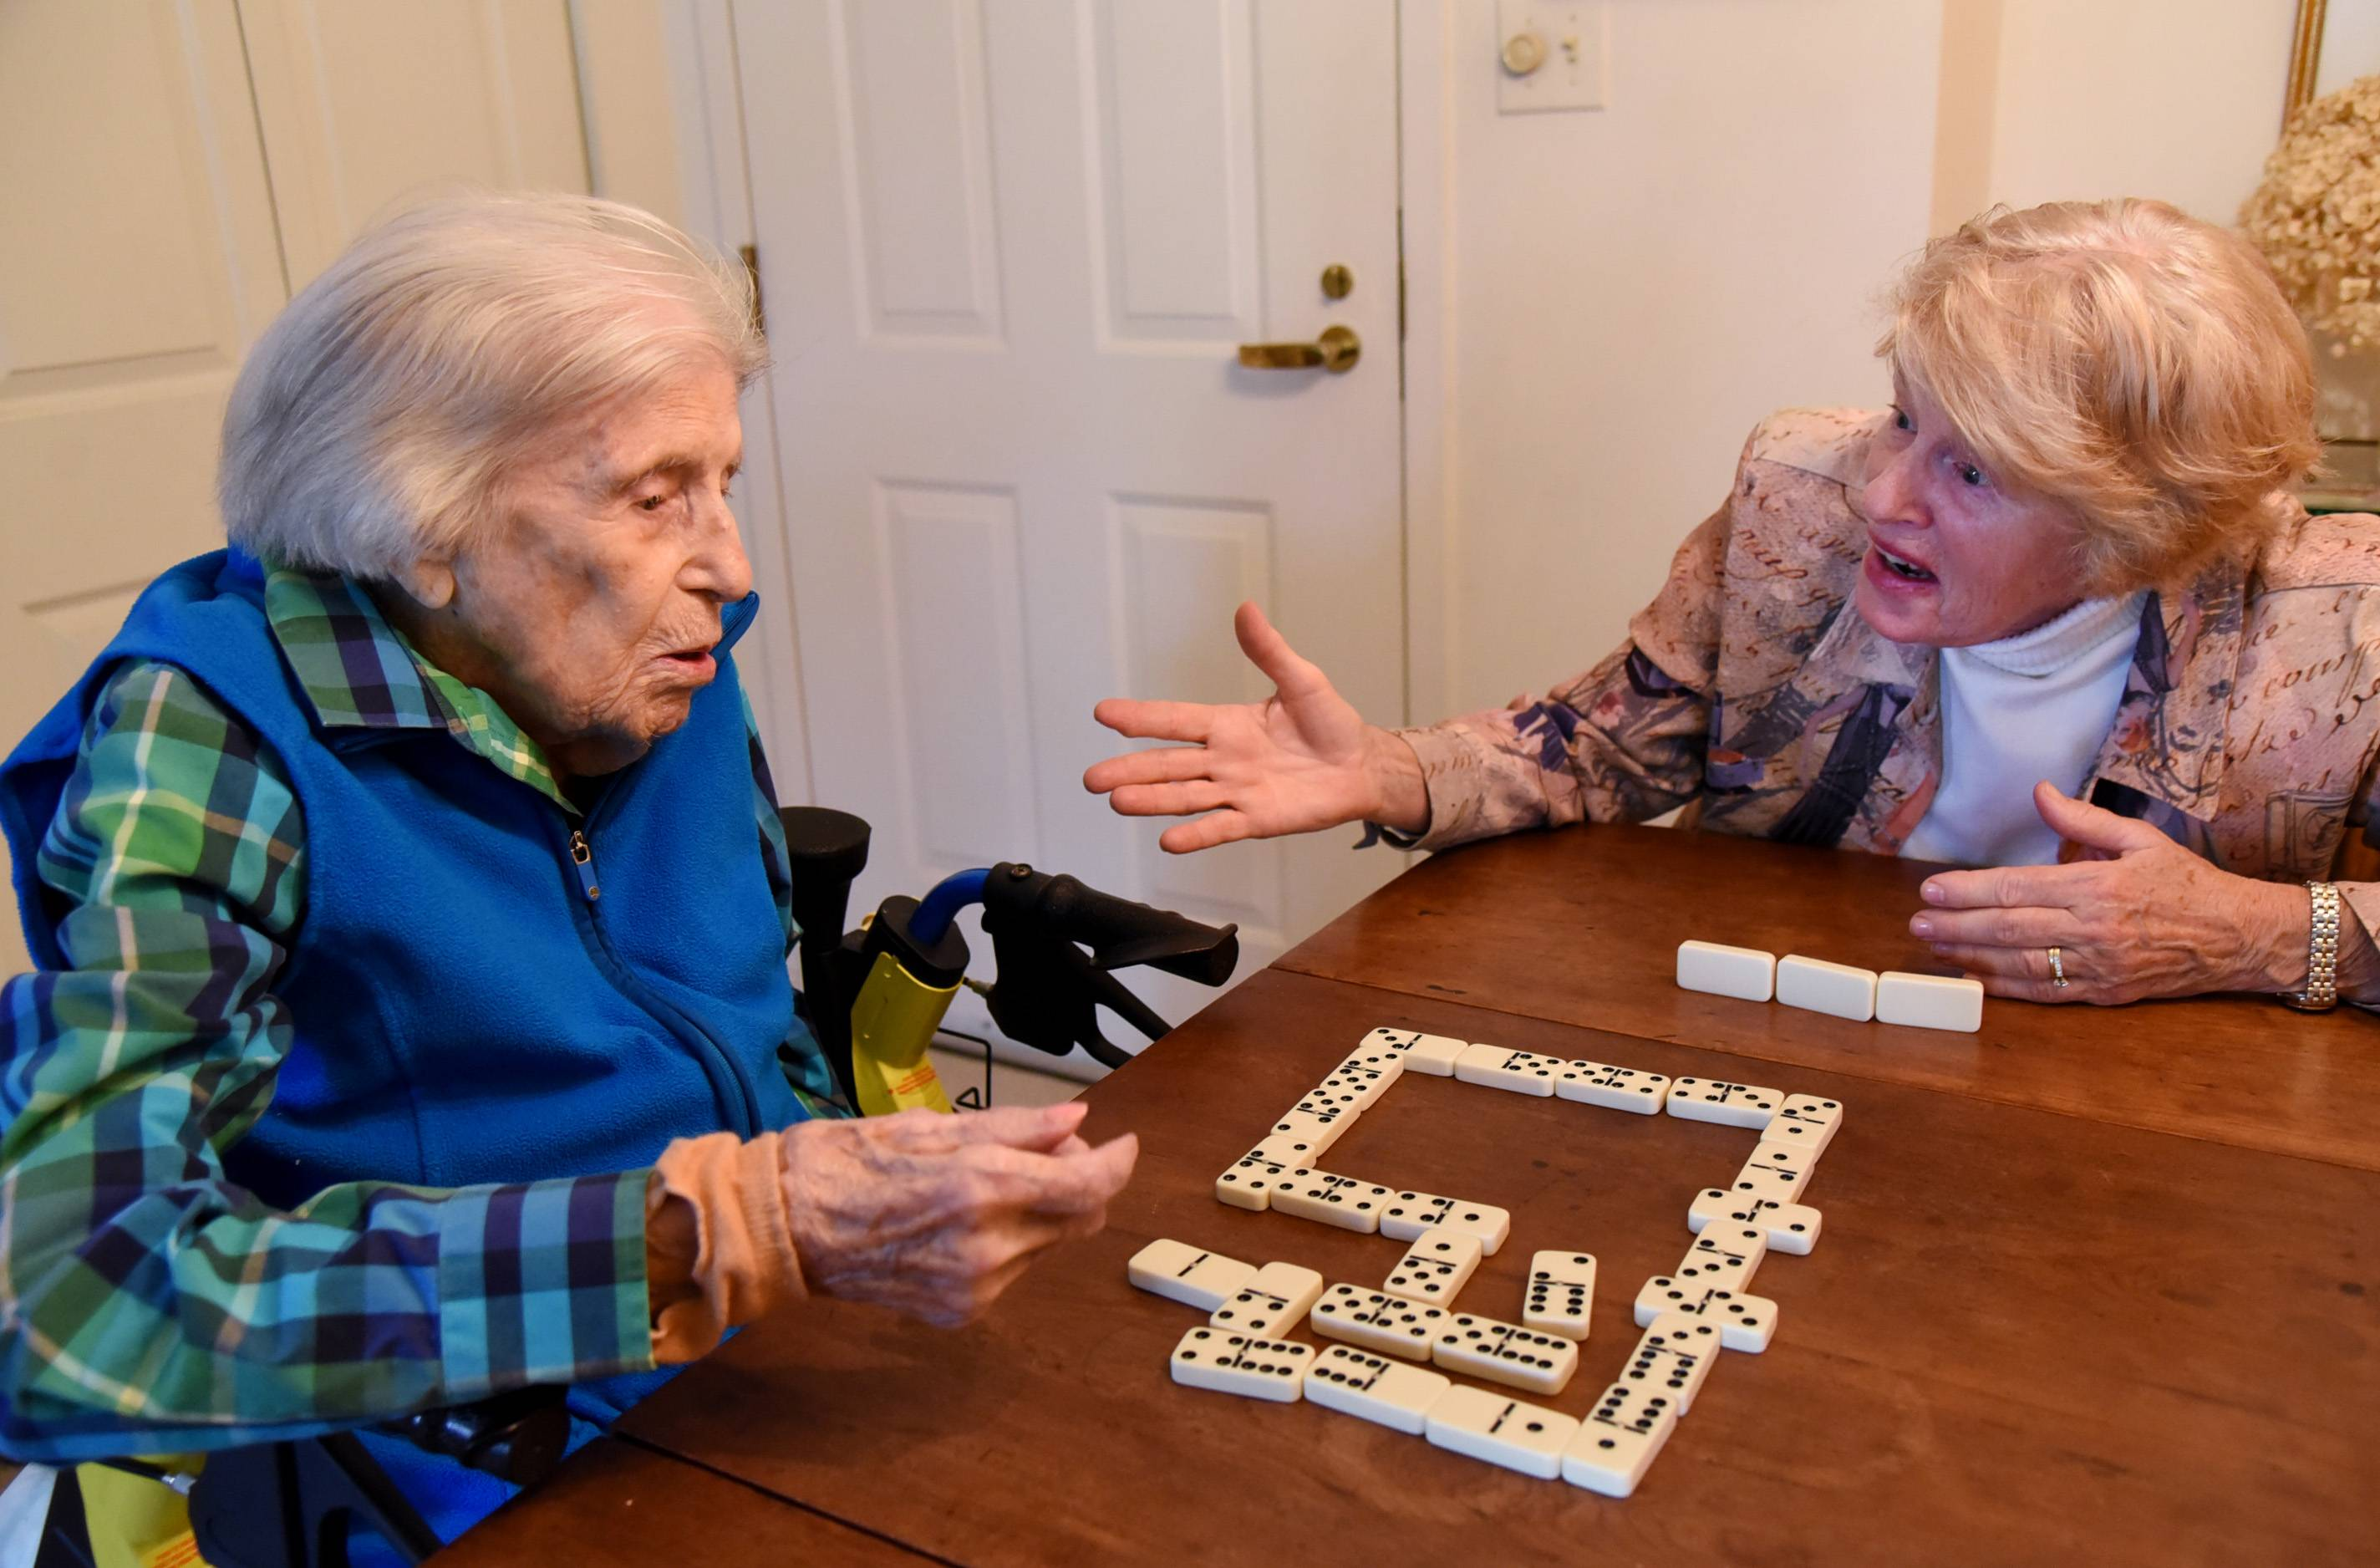 At nearly 110 years old, Lois Arbanas still enjoys beating her daughter, Anne Feichter of Elk Grove Village, in a good game of dominoes.